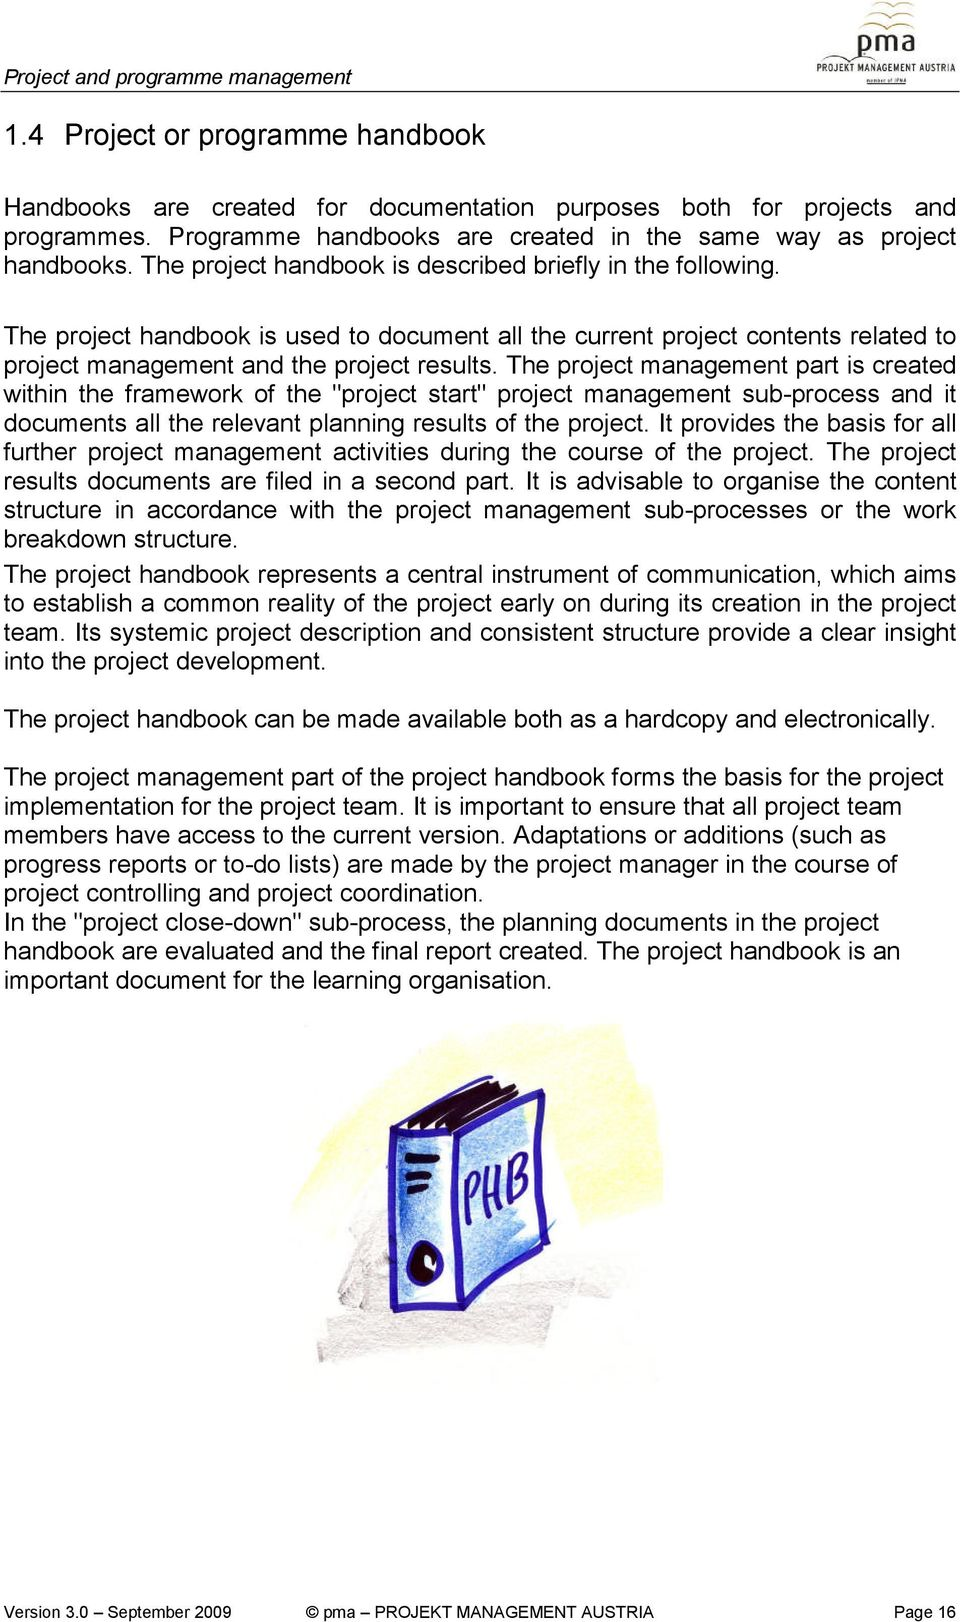 The project handbook is used to document all the current project contents related to project management and the project results.